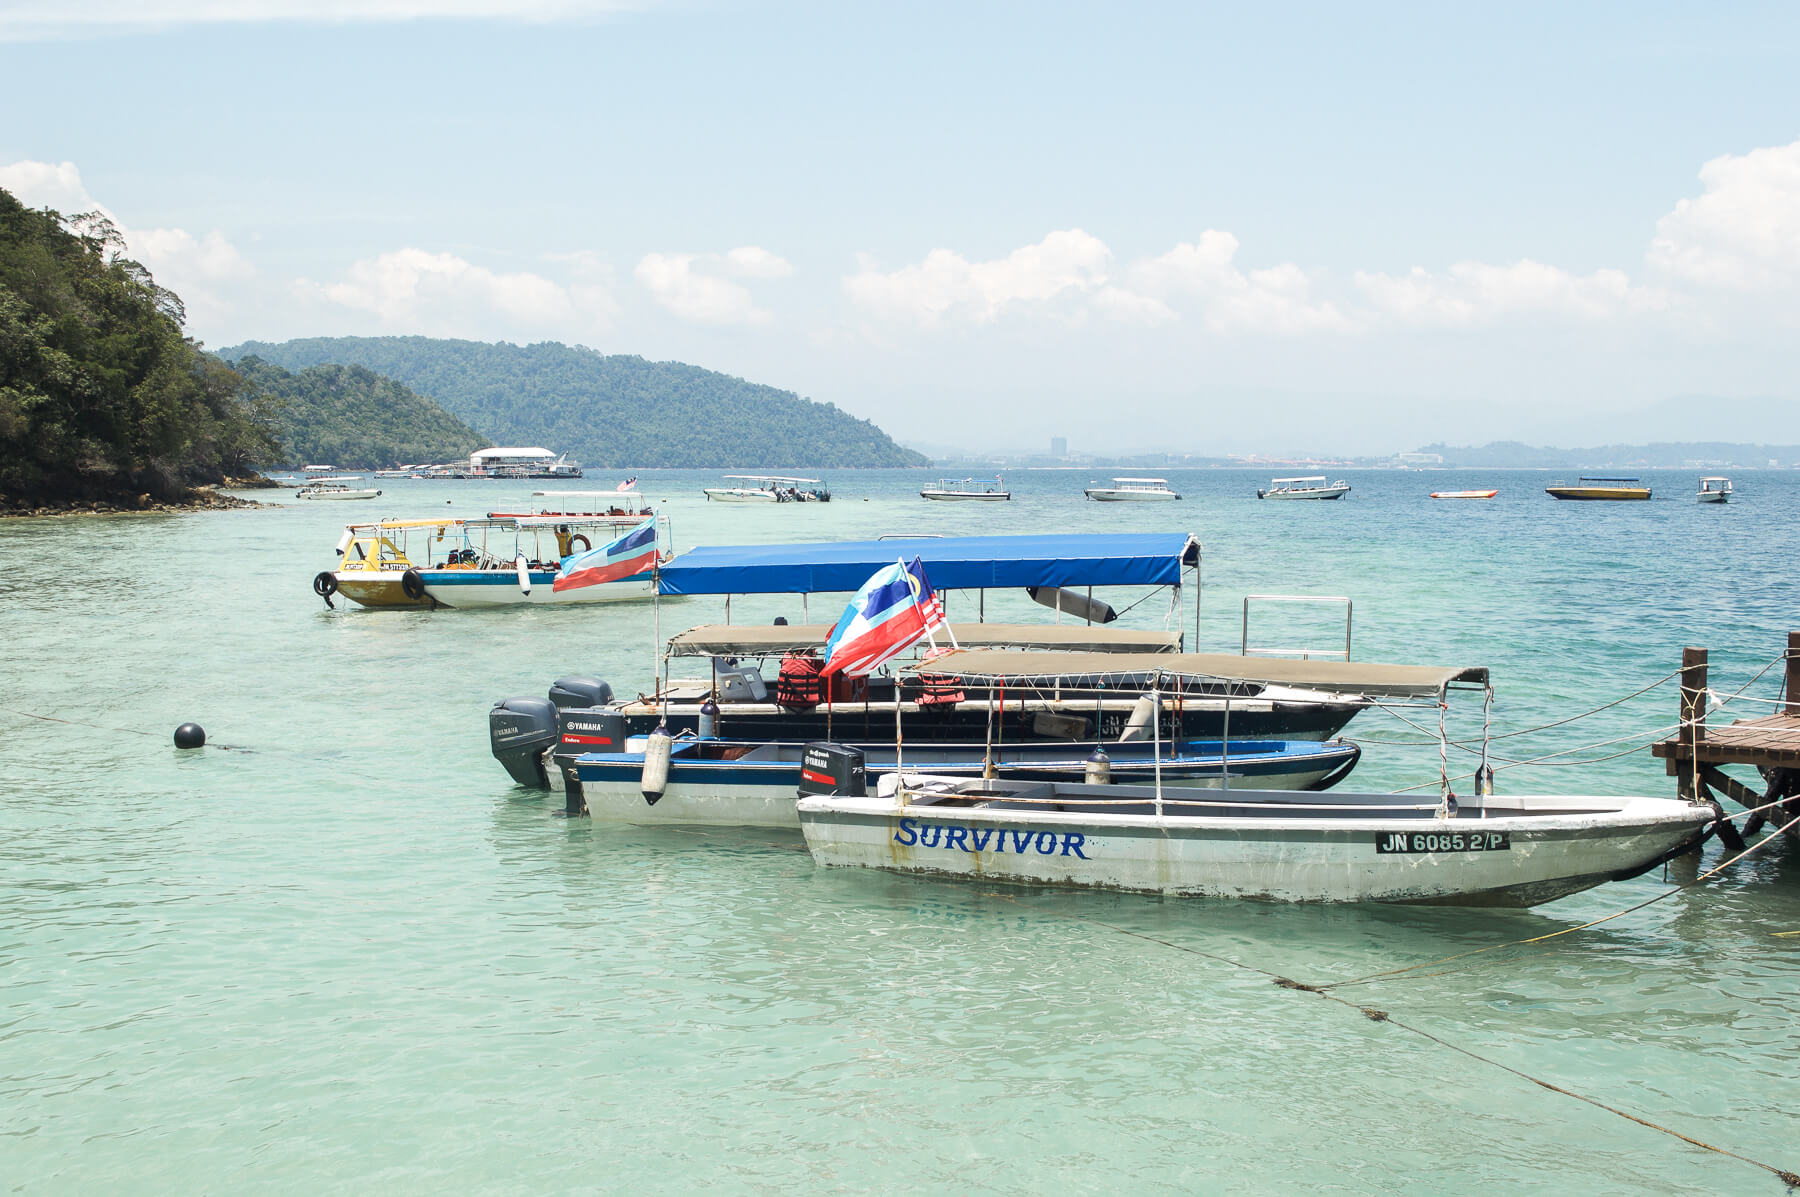 Boats docked at small island in Borneo